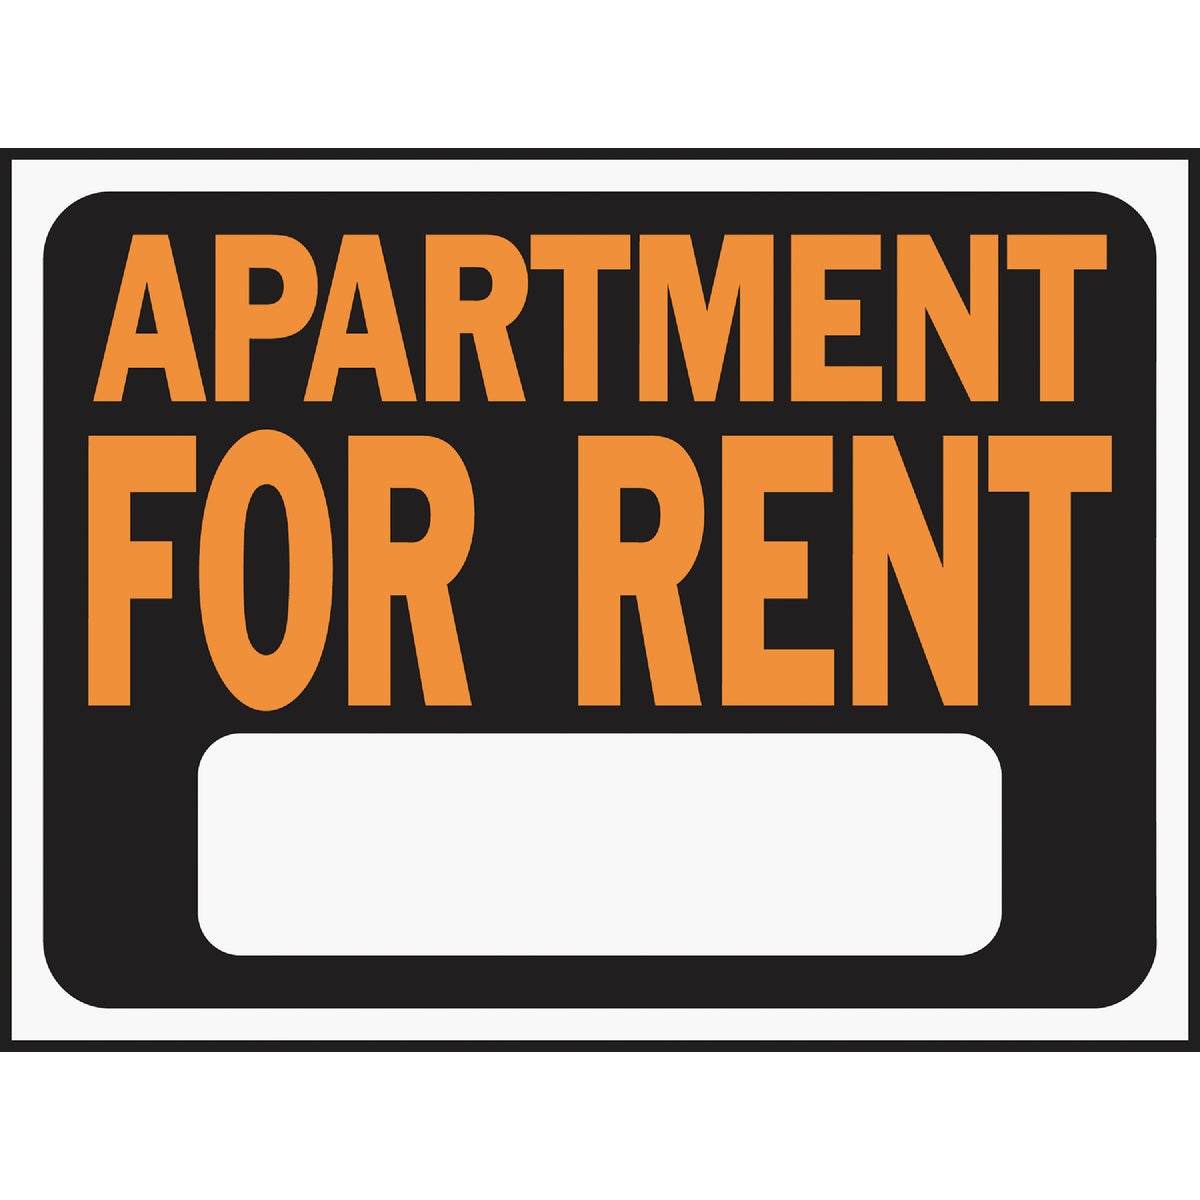 9X12 APT FOR RENT SIGN - 3001 by Hy Ko Prods Co